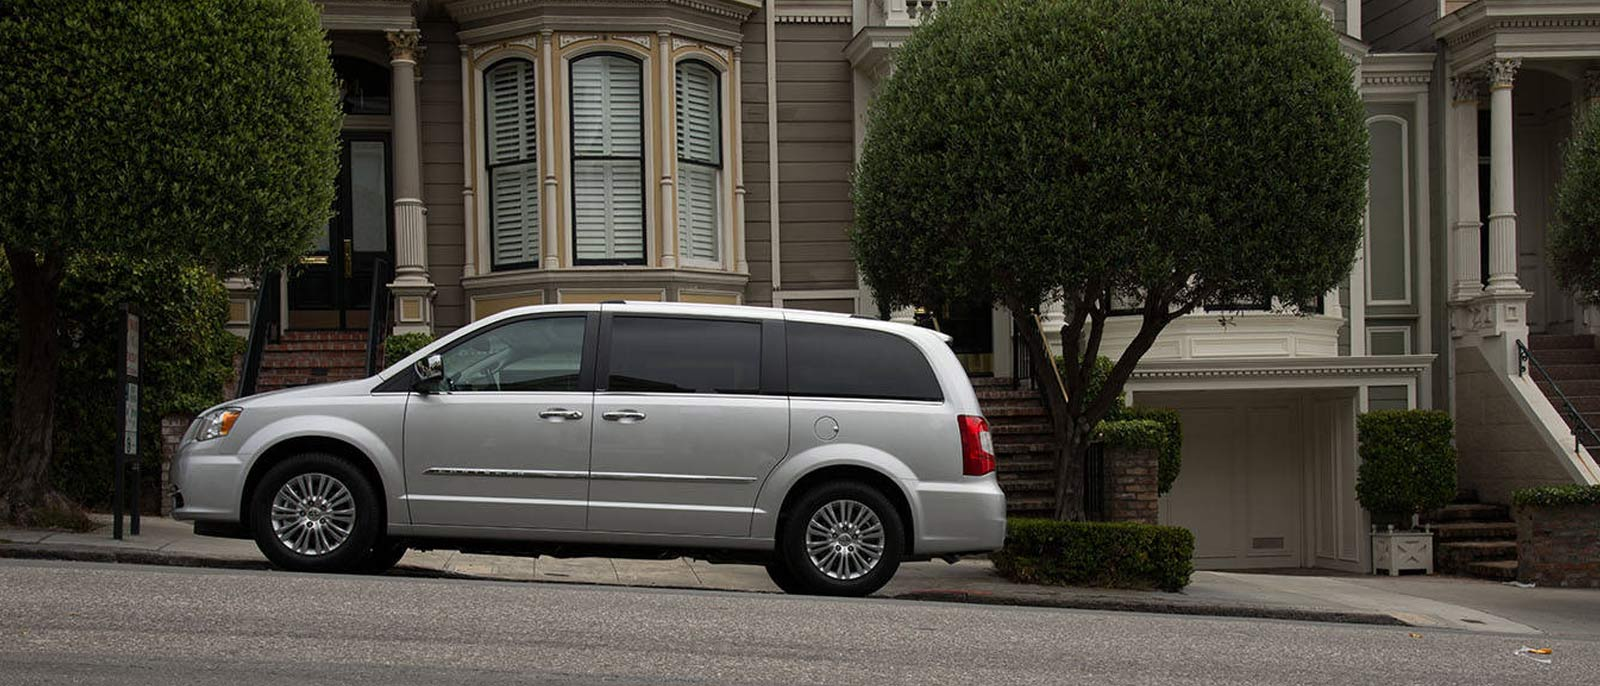 2015 Chrysler Town & Country side view